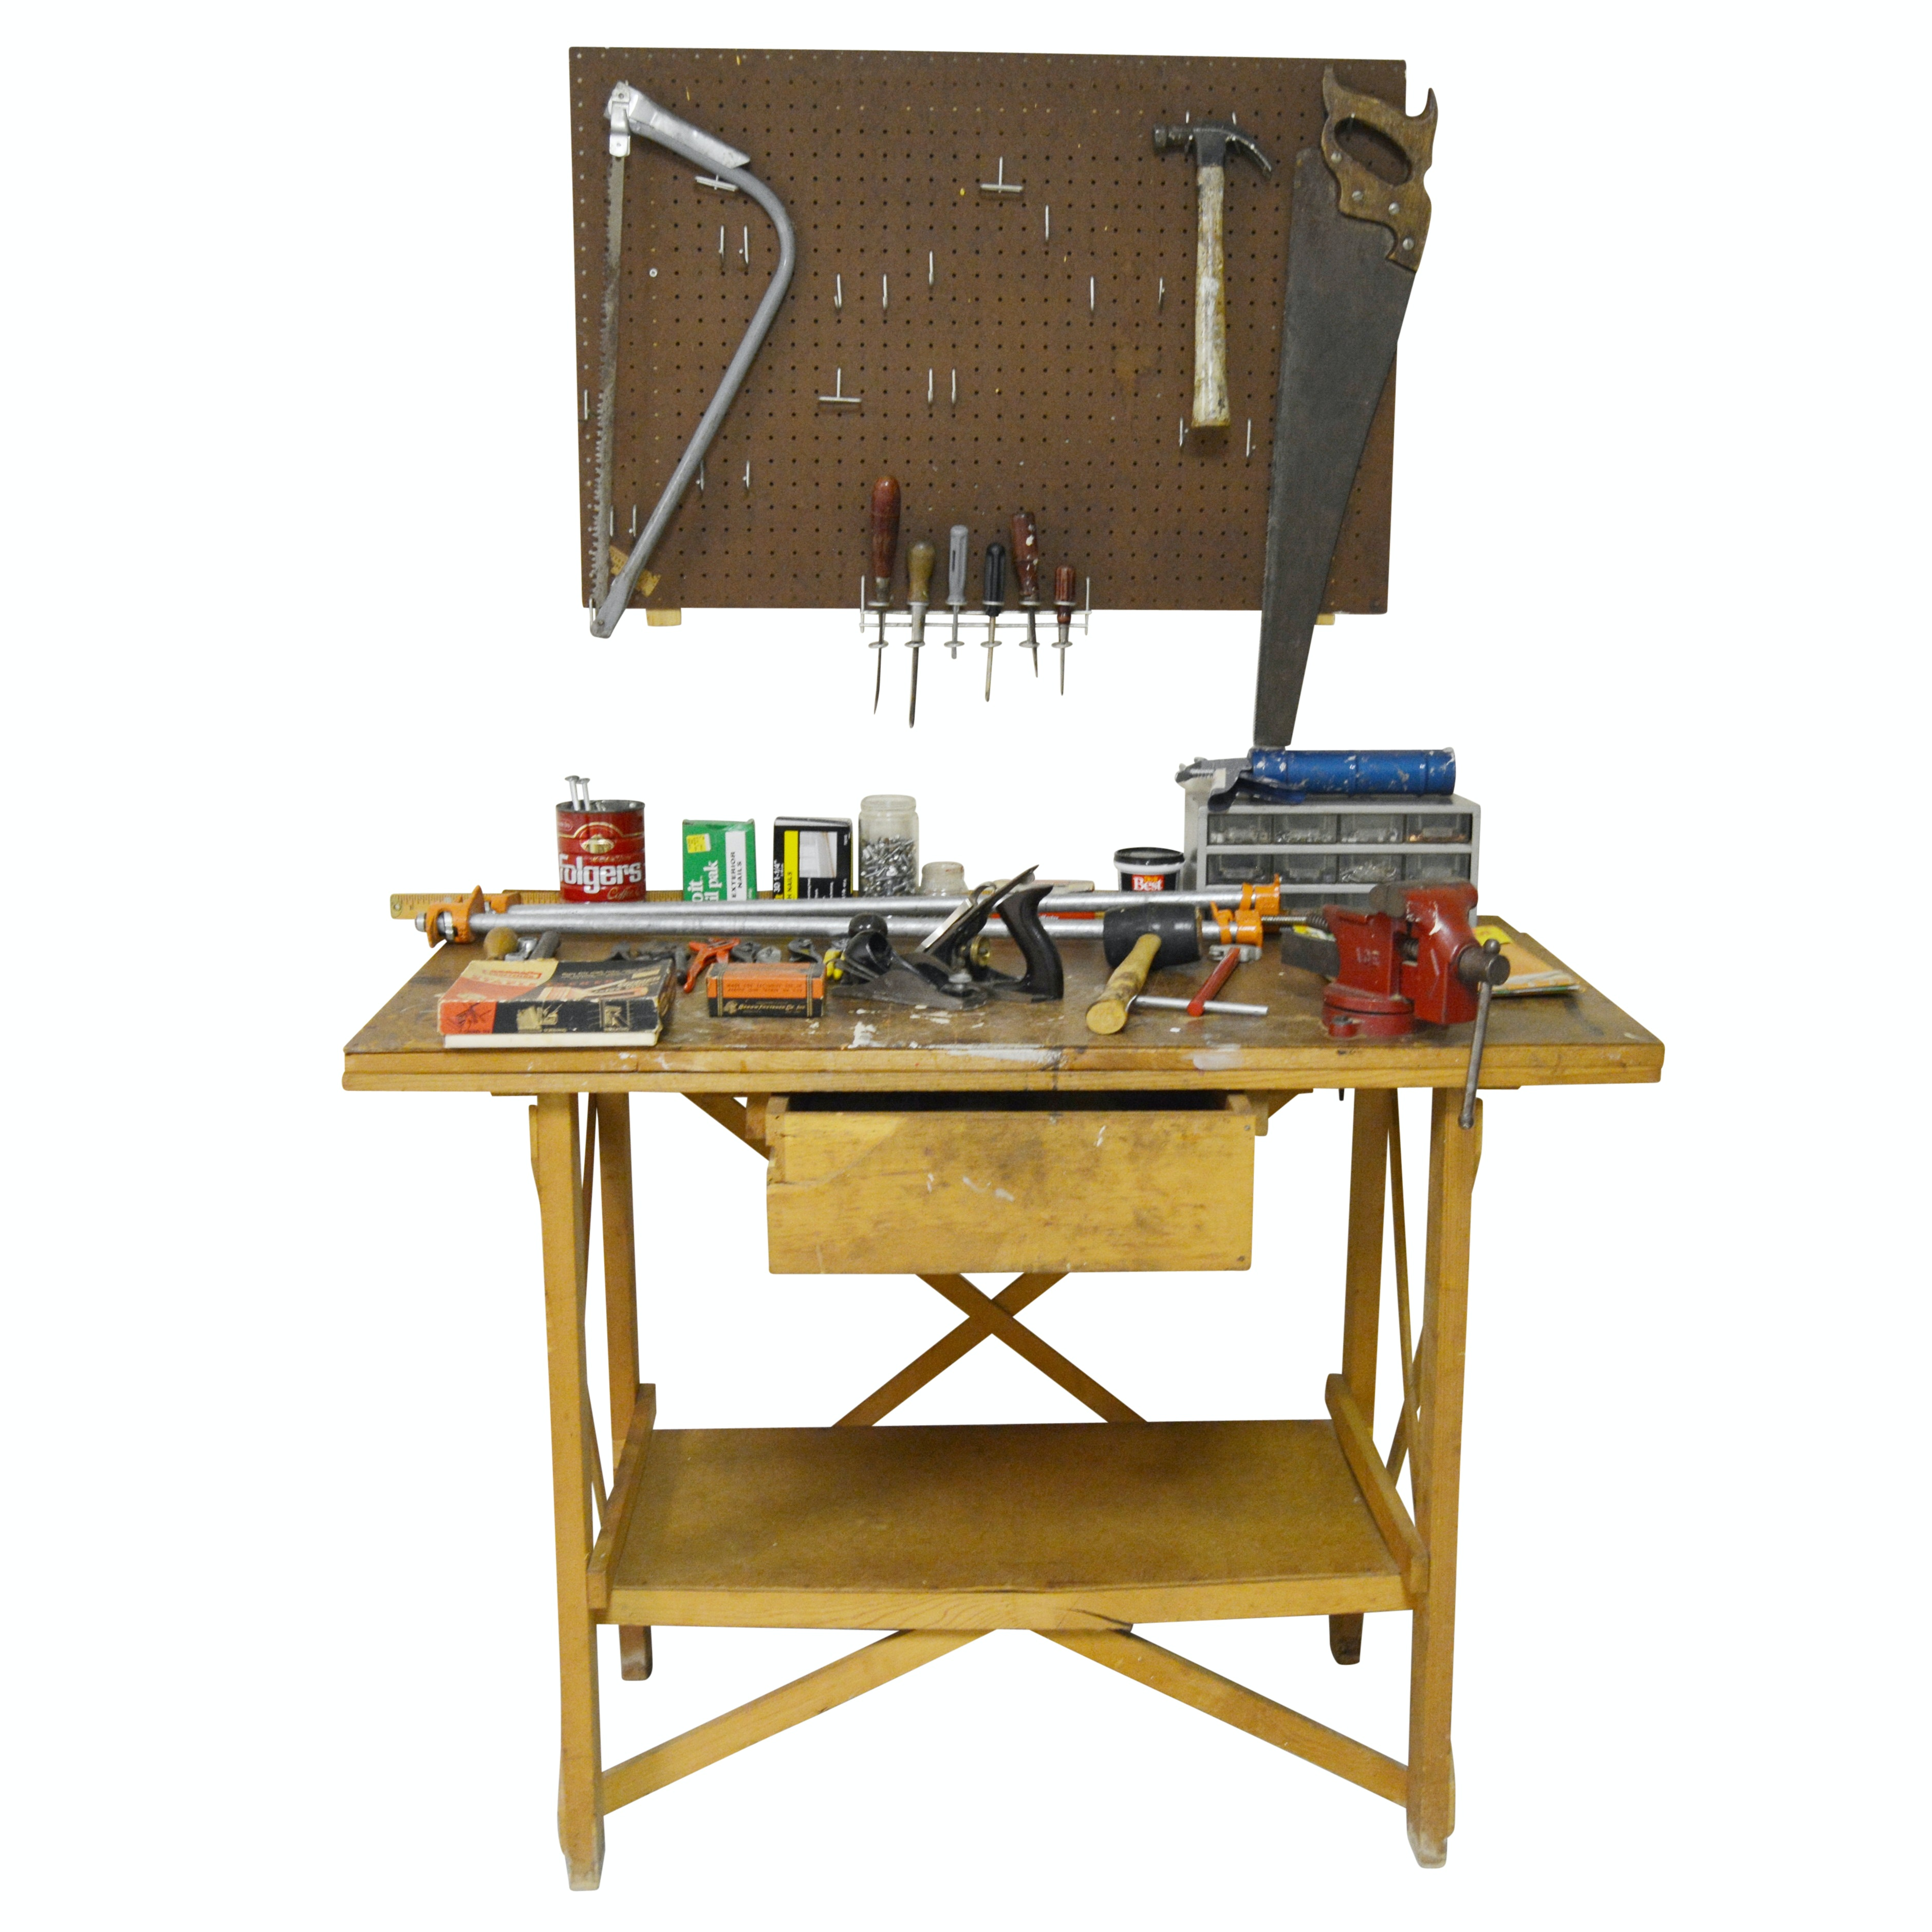 Tool Bench and Hand Tools